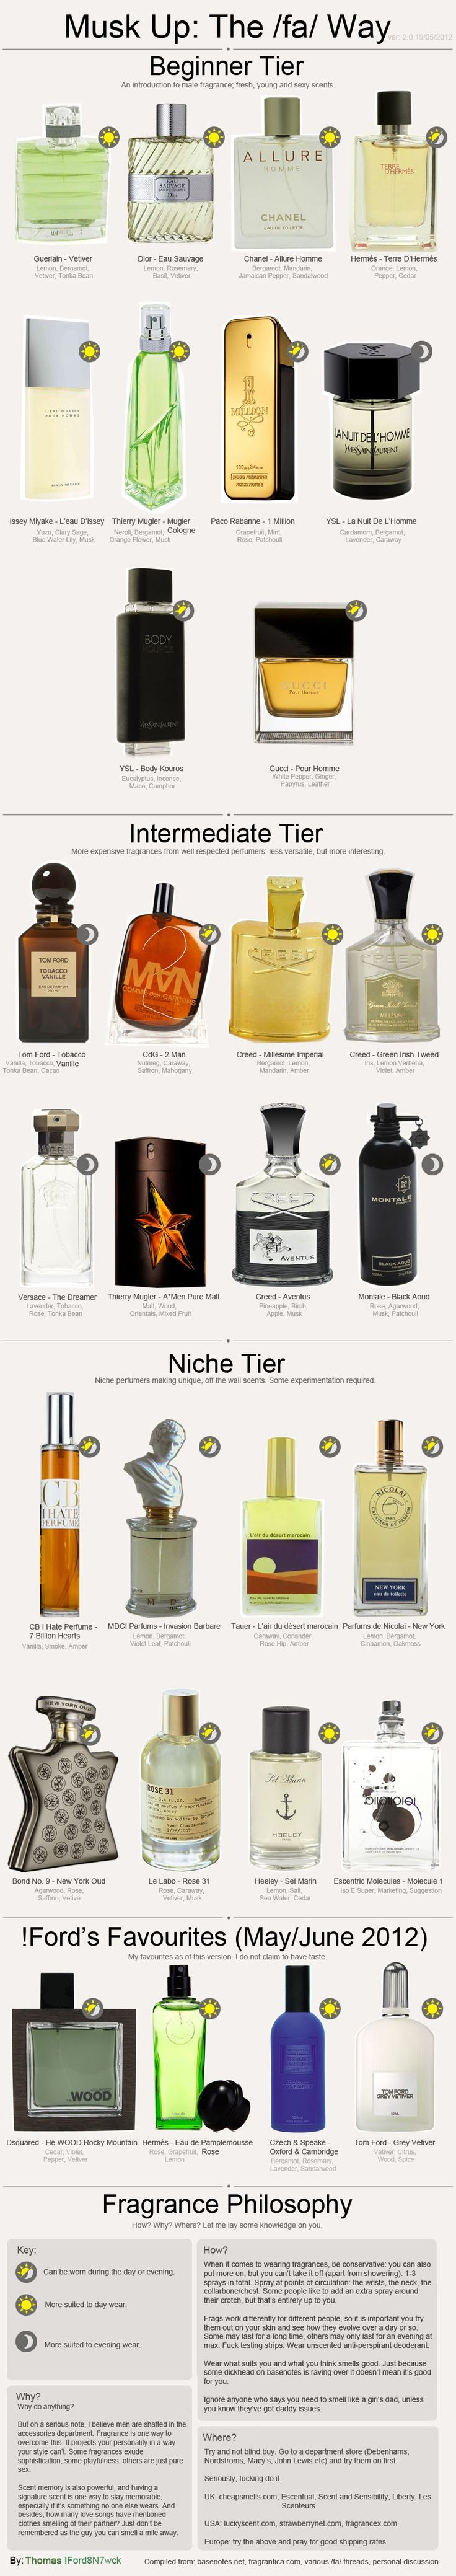 New to men's cologne or simple just don't have a clue how to go about choosing a scent, here's a quick Cologne 101 lesson.  May you smell like heaven!